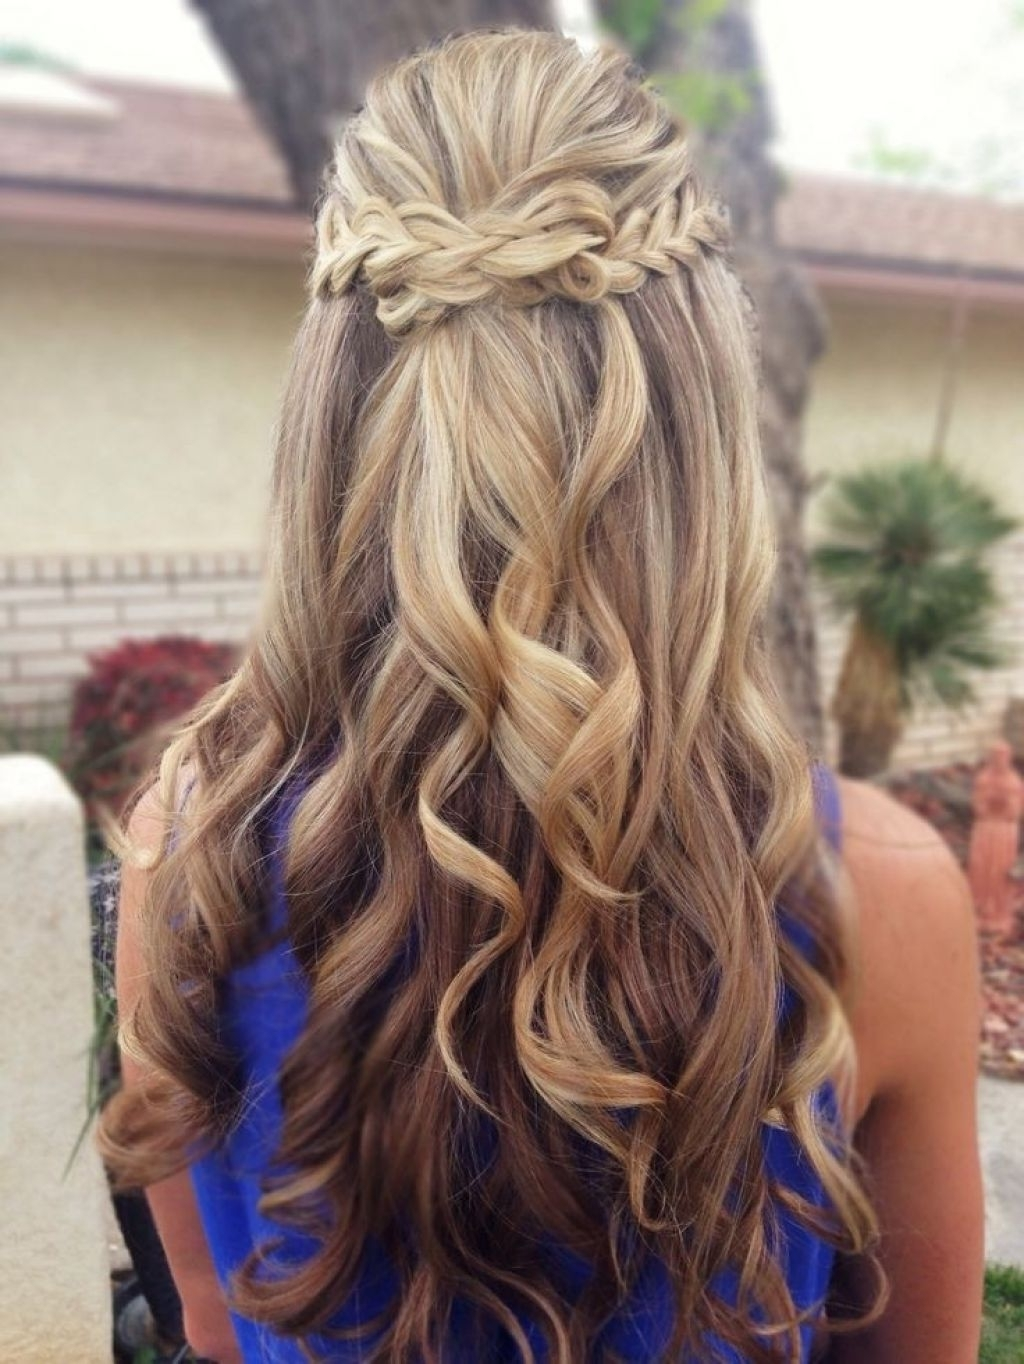 Hottest Promstyles For Short Impressive Hairstyles Dances Women Throughout Famous Braided Hairstyles For Dance (View 7 of 15)